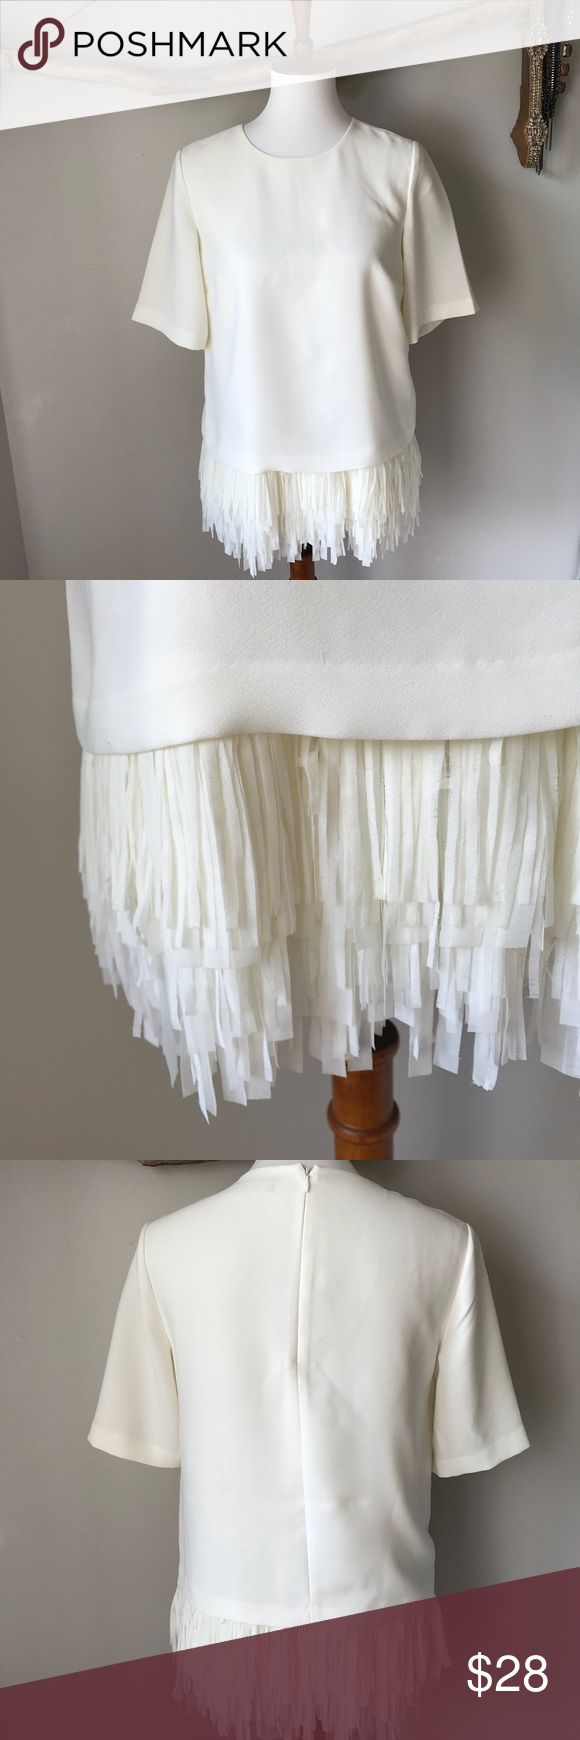 Banana Republic Fringe Blouse A fun and festive top! Relaxed fit Ivory short sleeve blouse with layers of fringe all over hem. In great used condition! Zipper in back. 100% polyester. 19 inch bust and 20 inches long before fringe. Banana Republic Tops Blouses